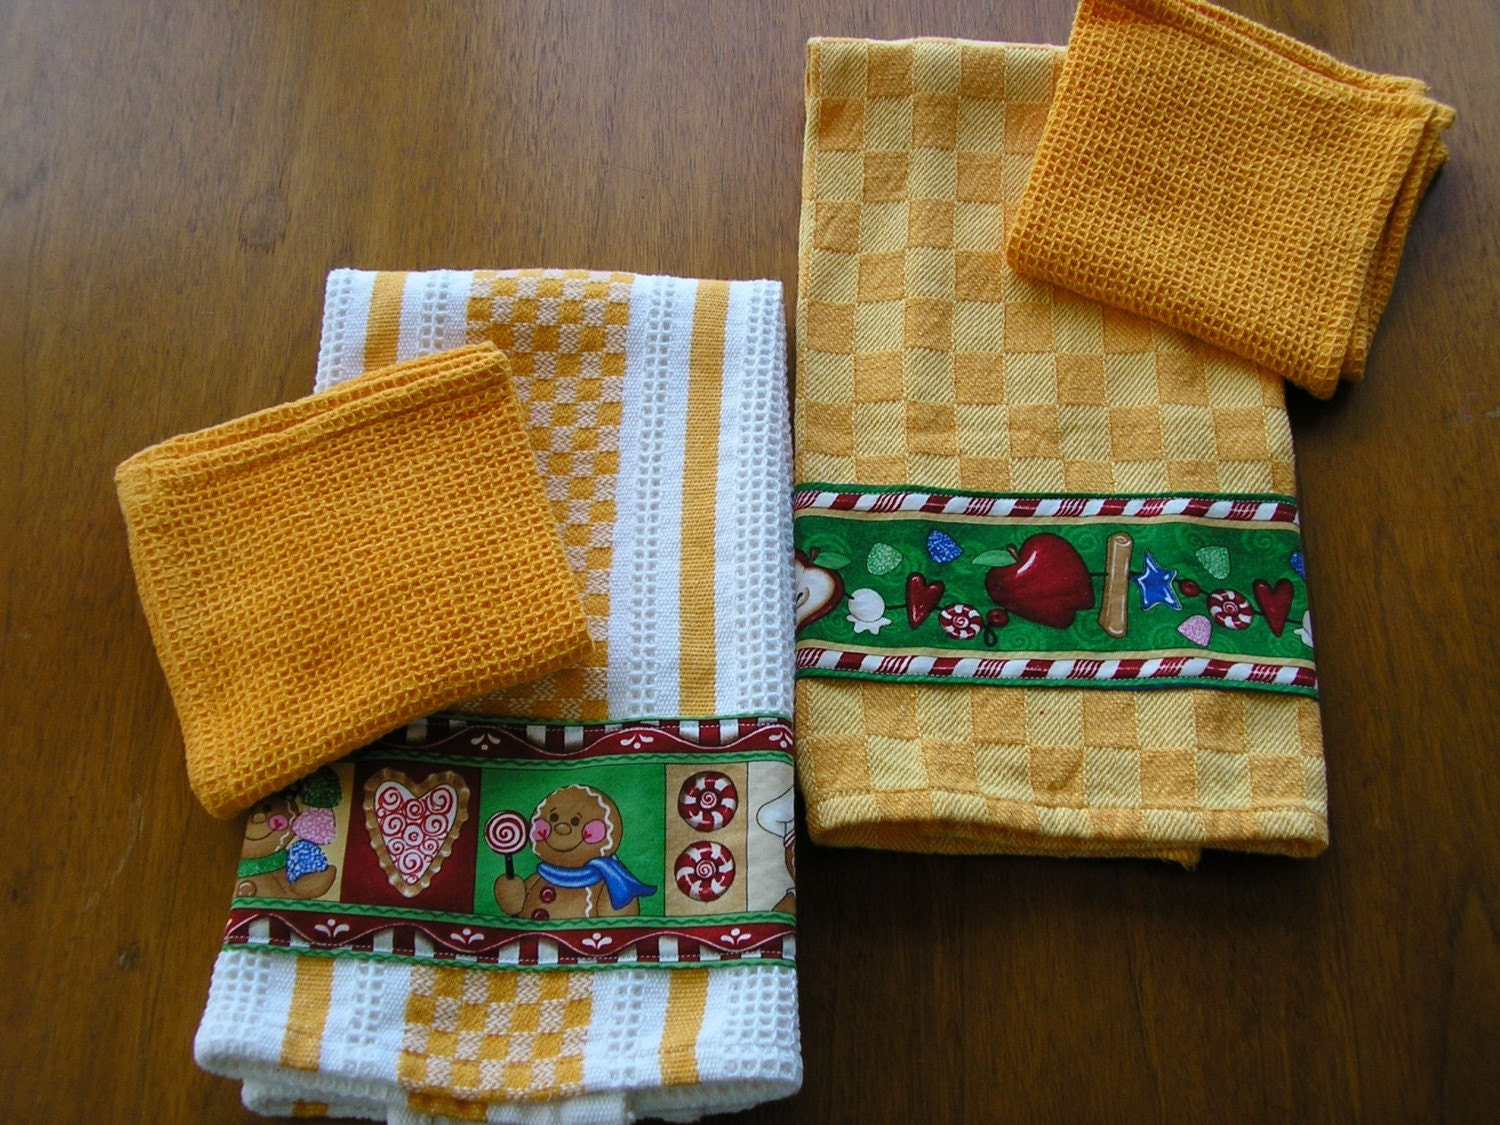 Knitted dishcloth patterns - TheFind